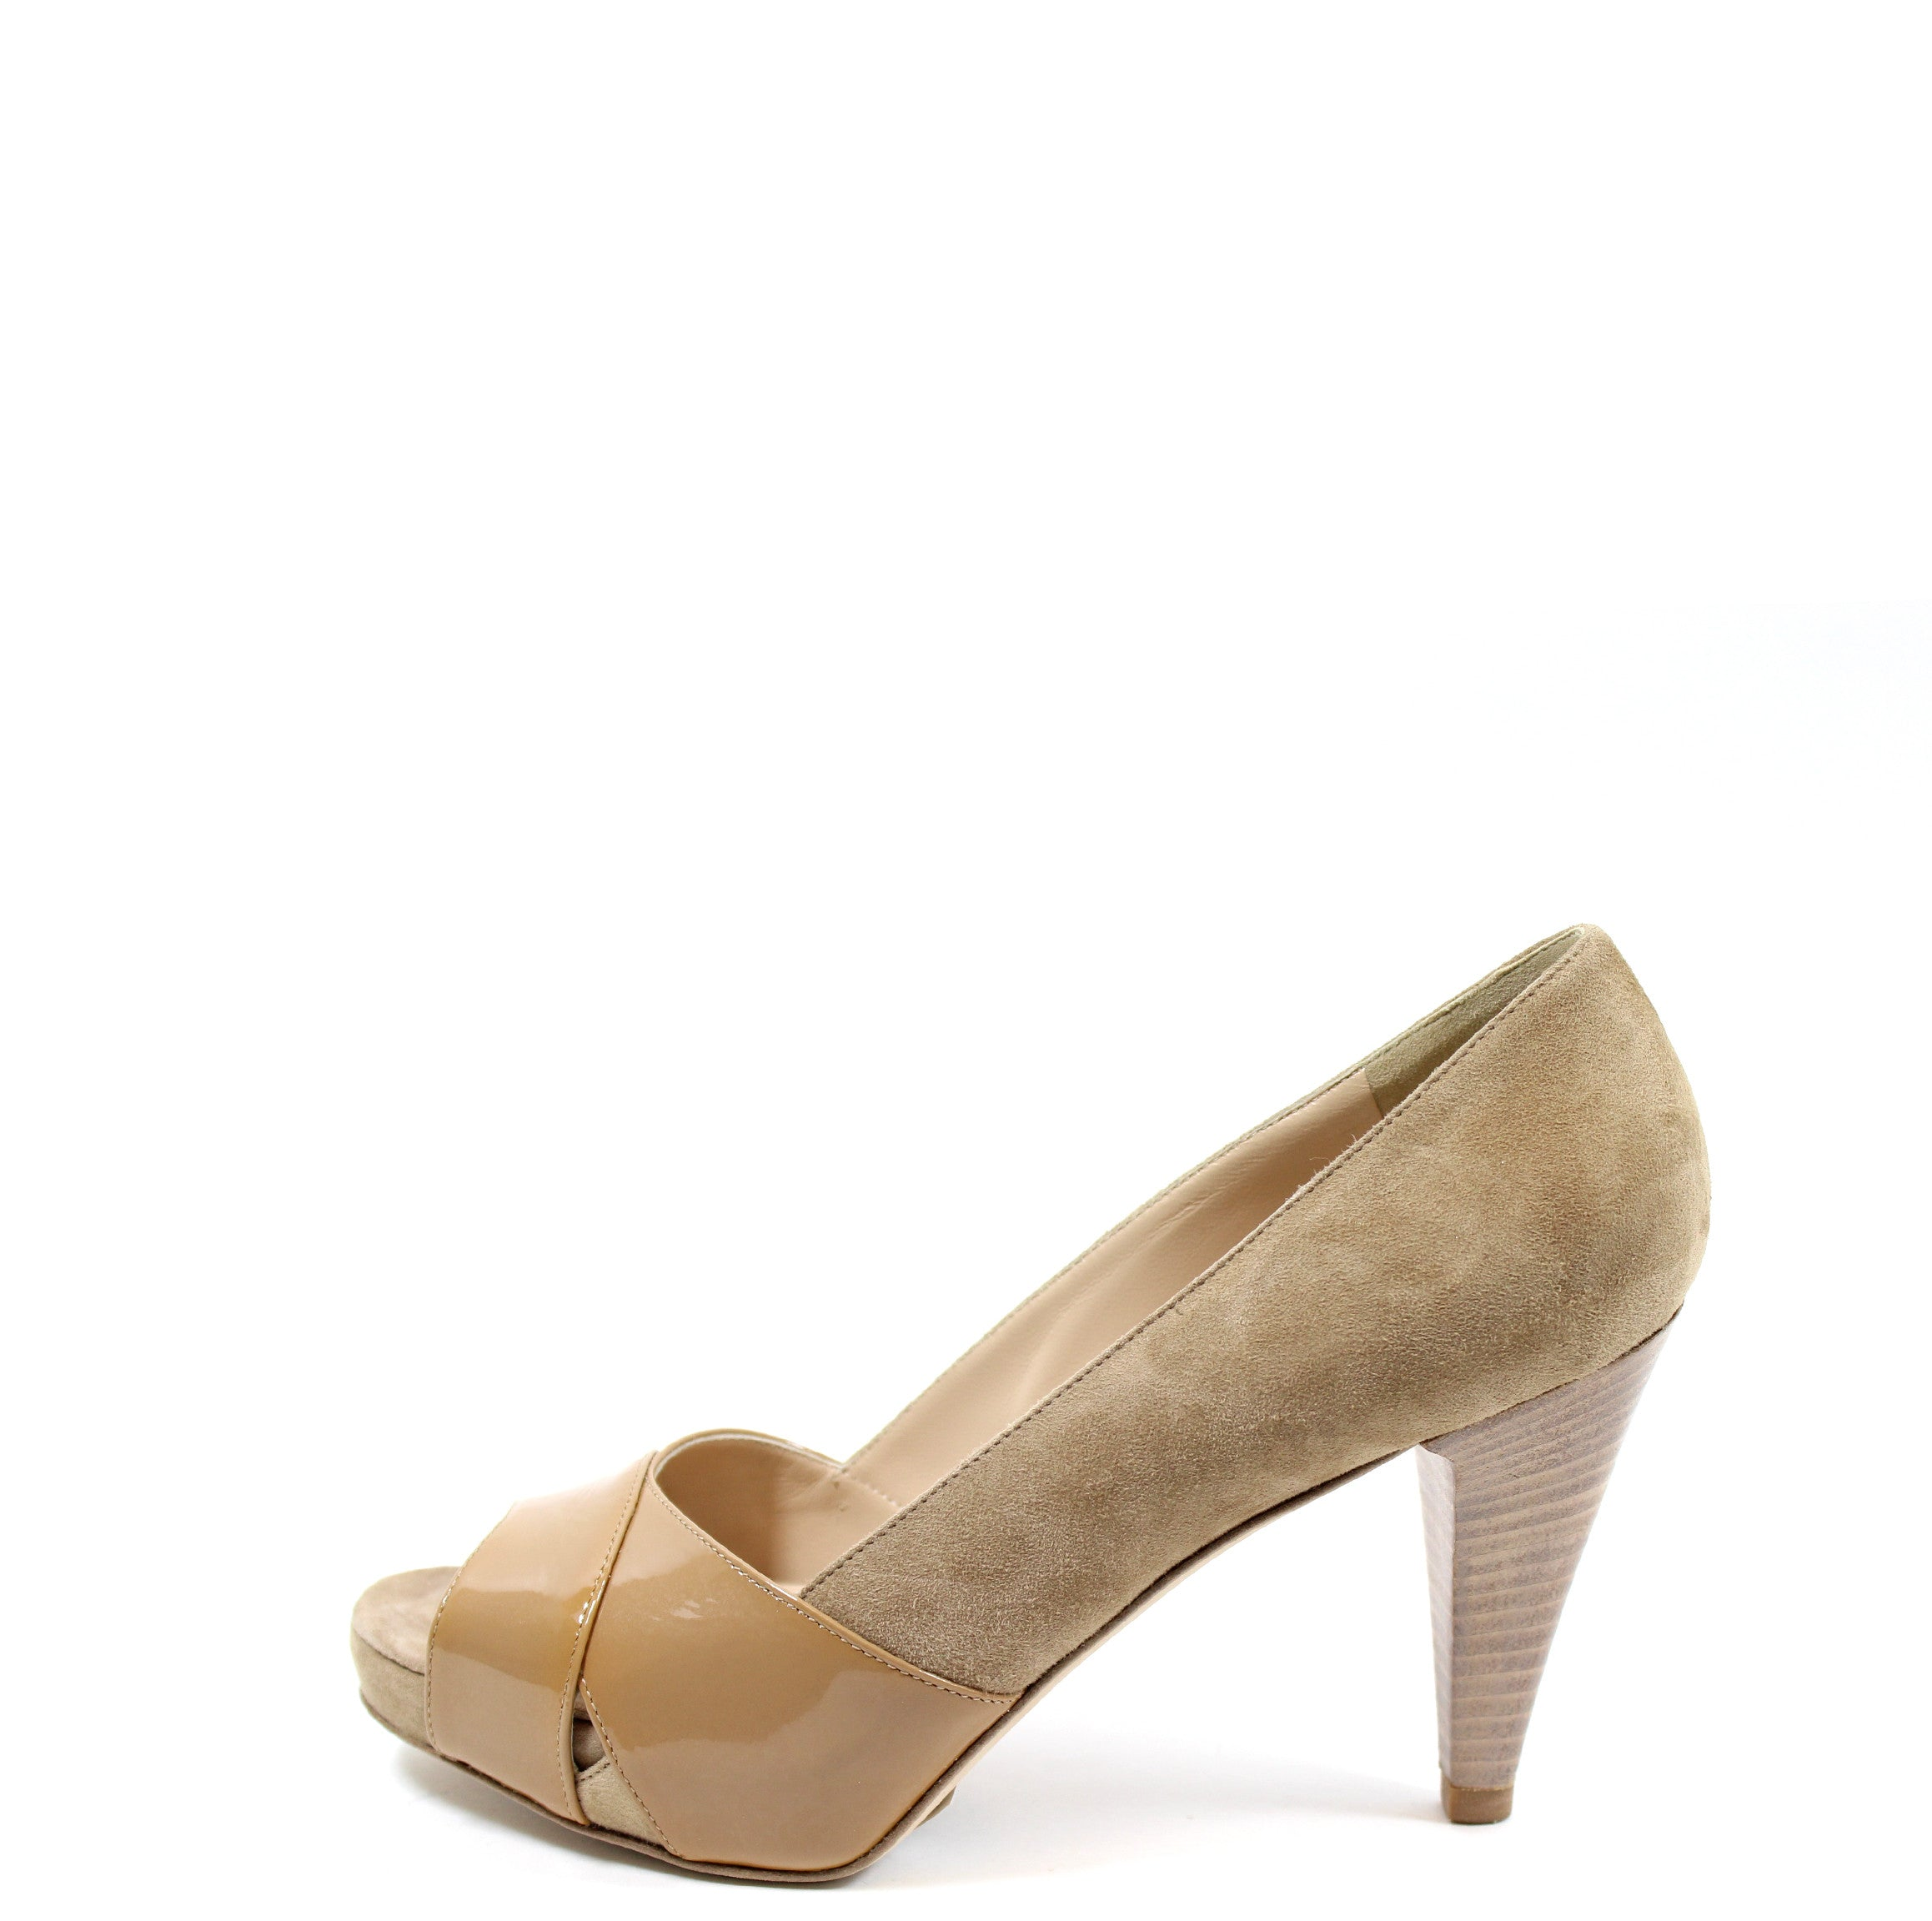 829215b93bd Fendi Beige Suede and Patent Leather Pumps (Size 37.5) – Encore Resale.com